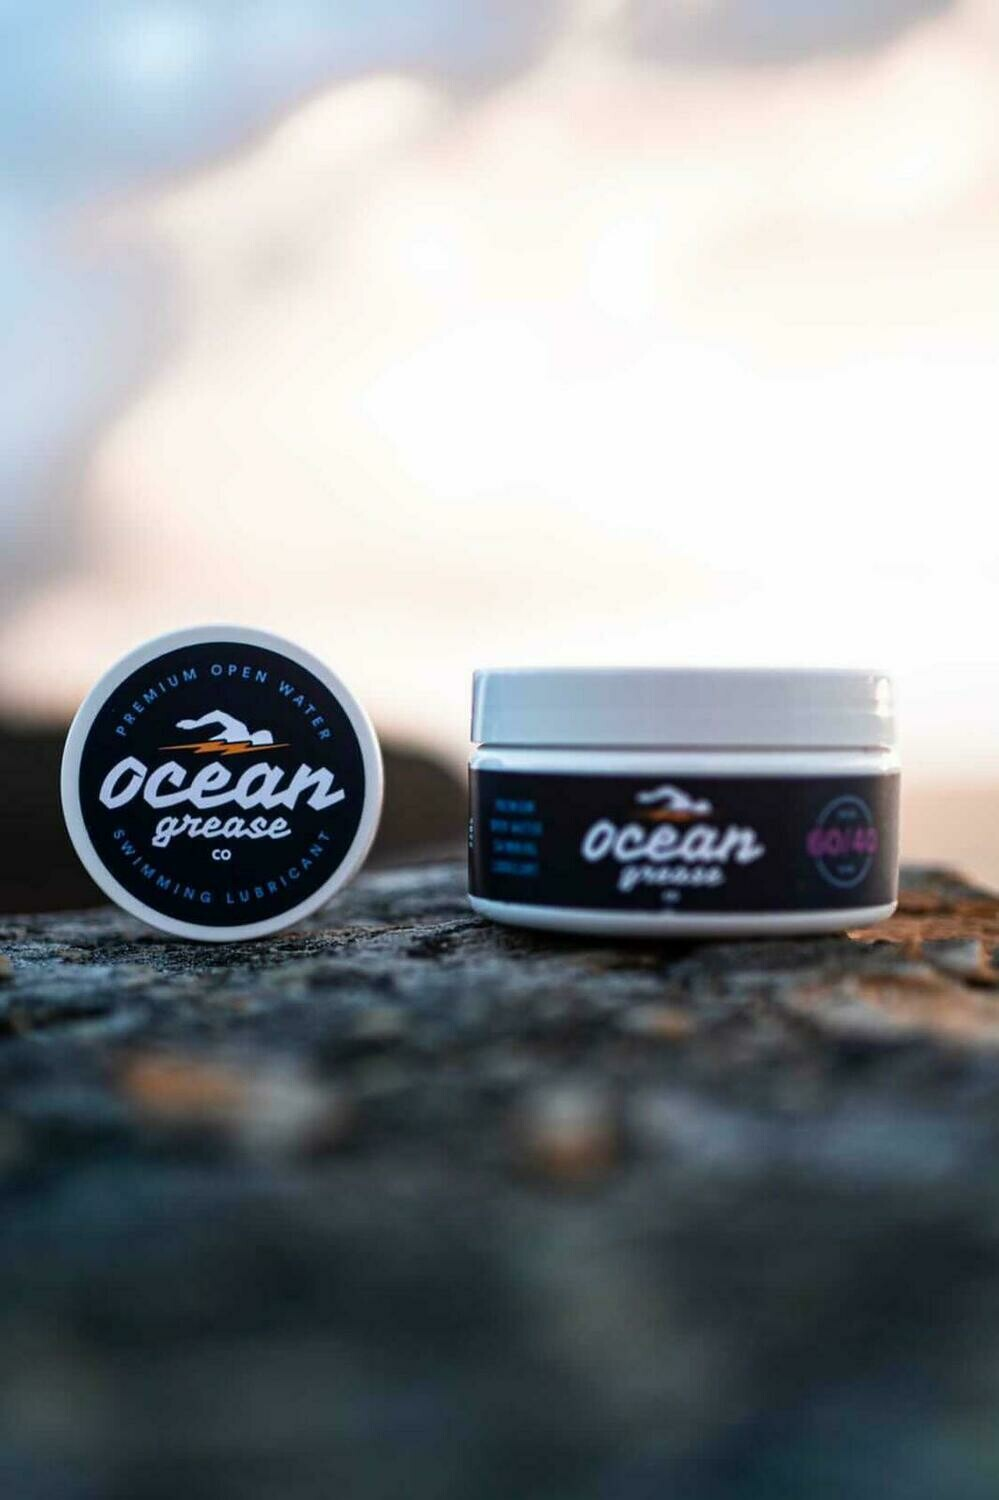 Ocean Grease 60/40 blend Peppermint scent 220g